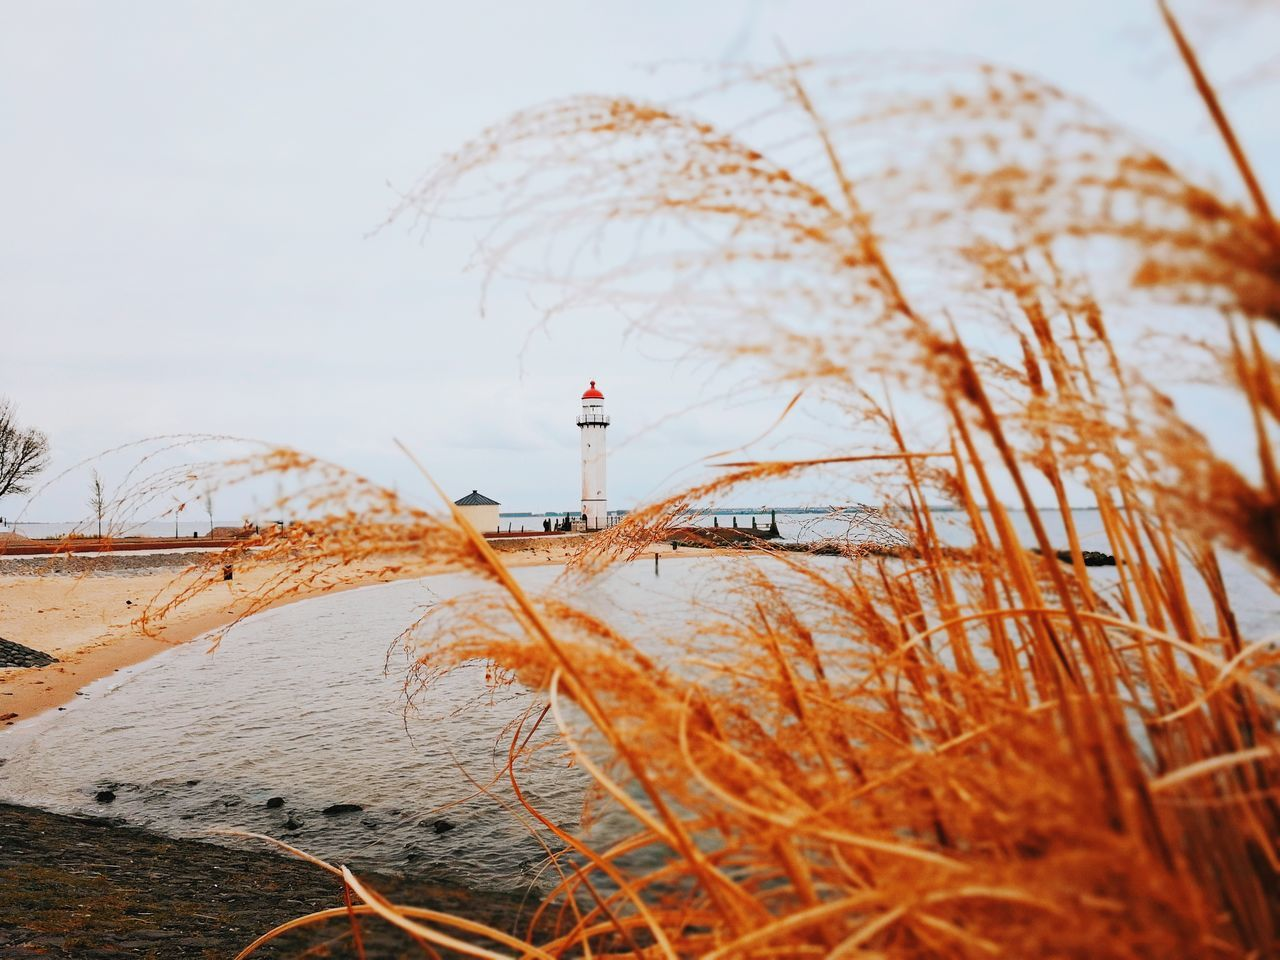 guidance, lighthouse, safety, direction, nature, protection, water, tranquility, day, no people, beauty in nature, outdoors, scenics, grass, winter, sky